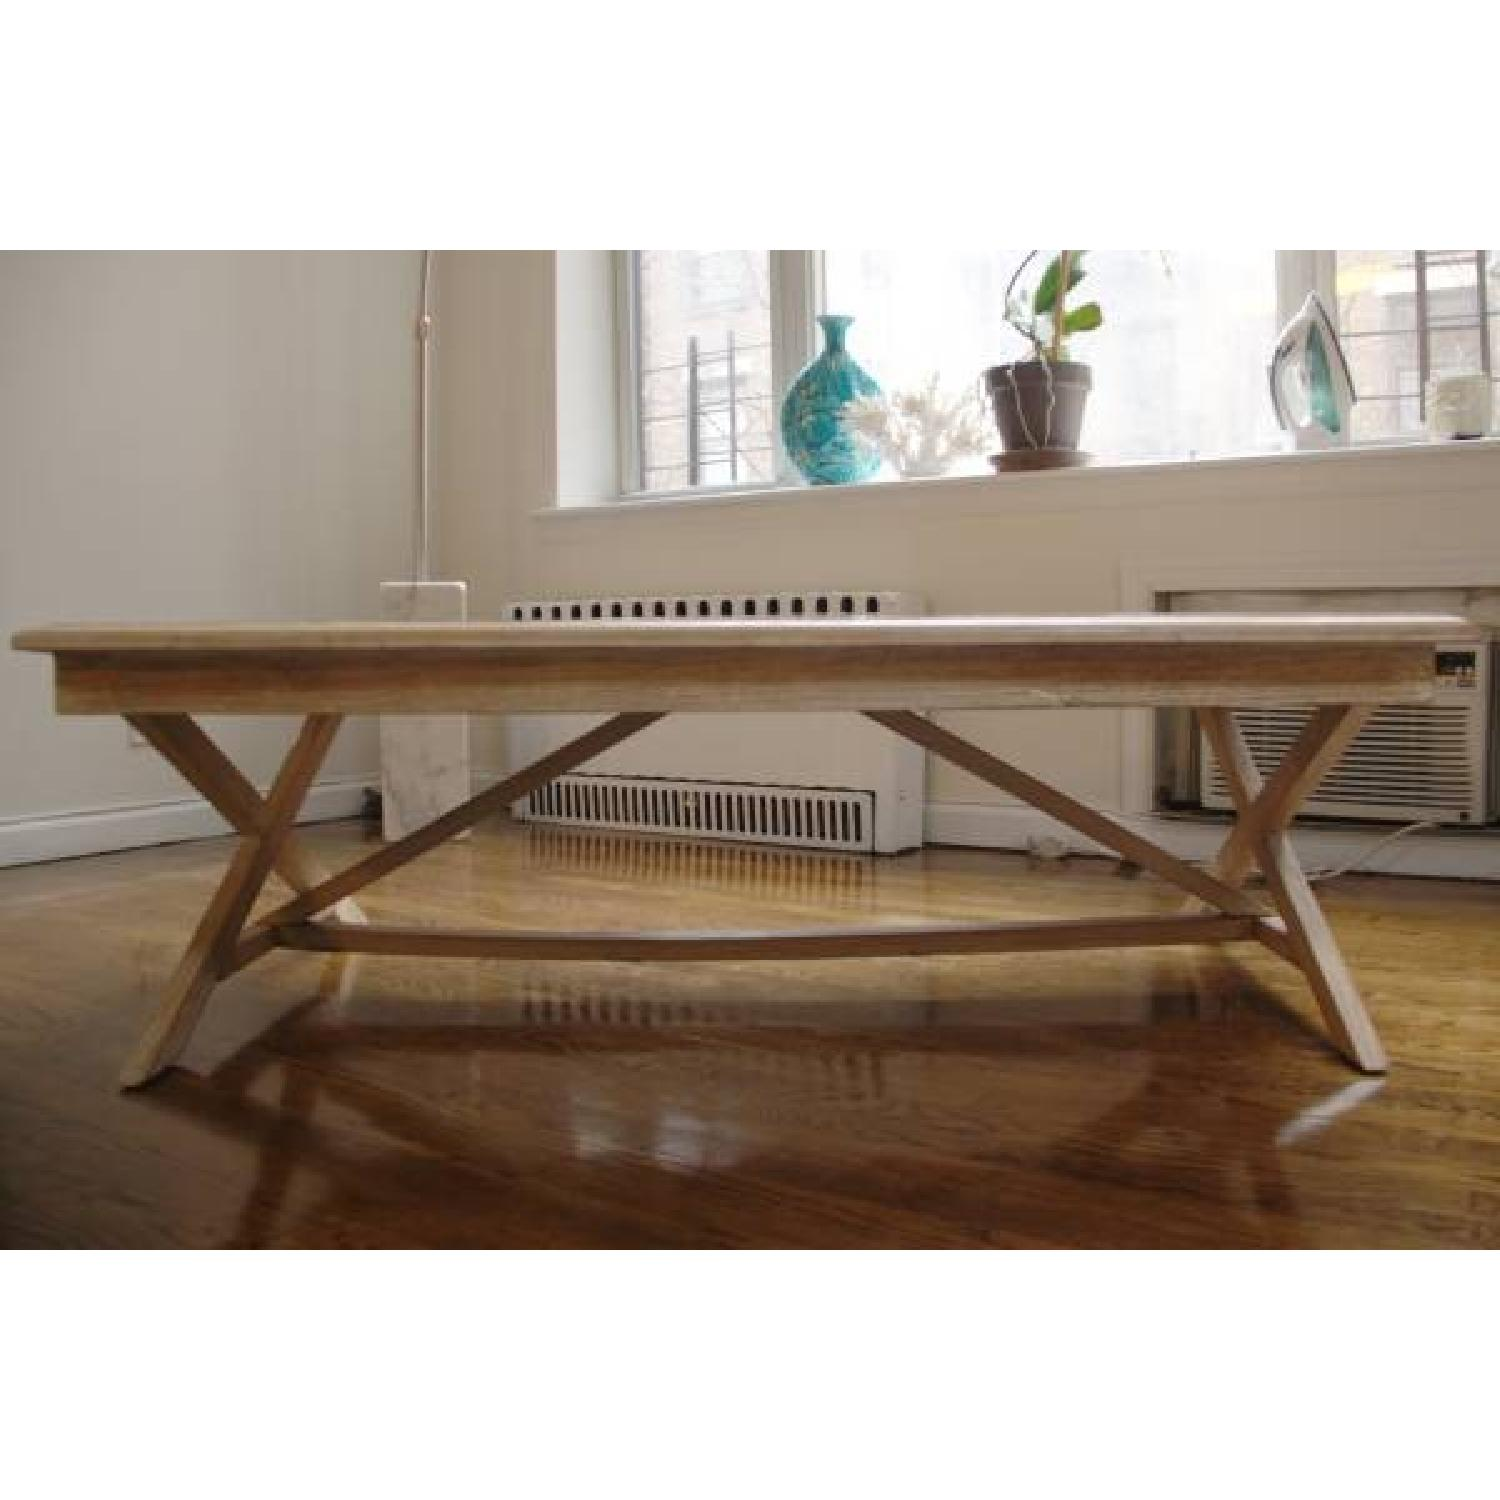 ABC Carpet & Home Handcrafted Coffee Table - image-4